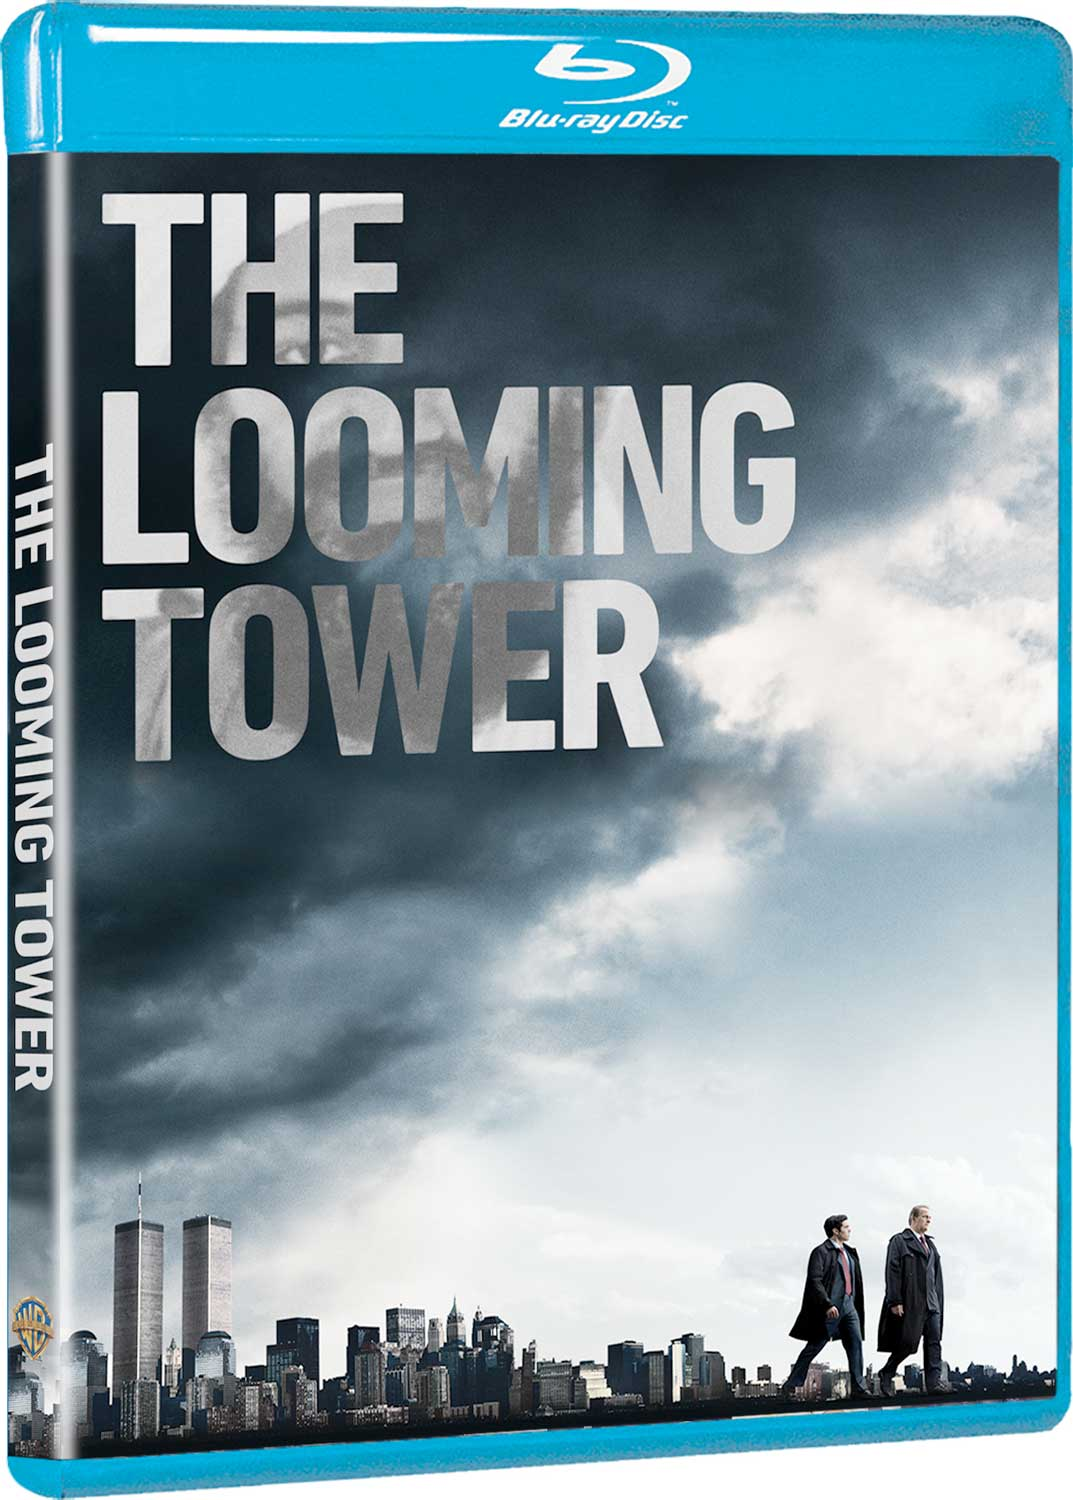 COF.THE LOOMING TOWER - STAGIONE 01 (2 BLU-RAY)